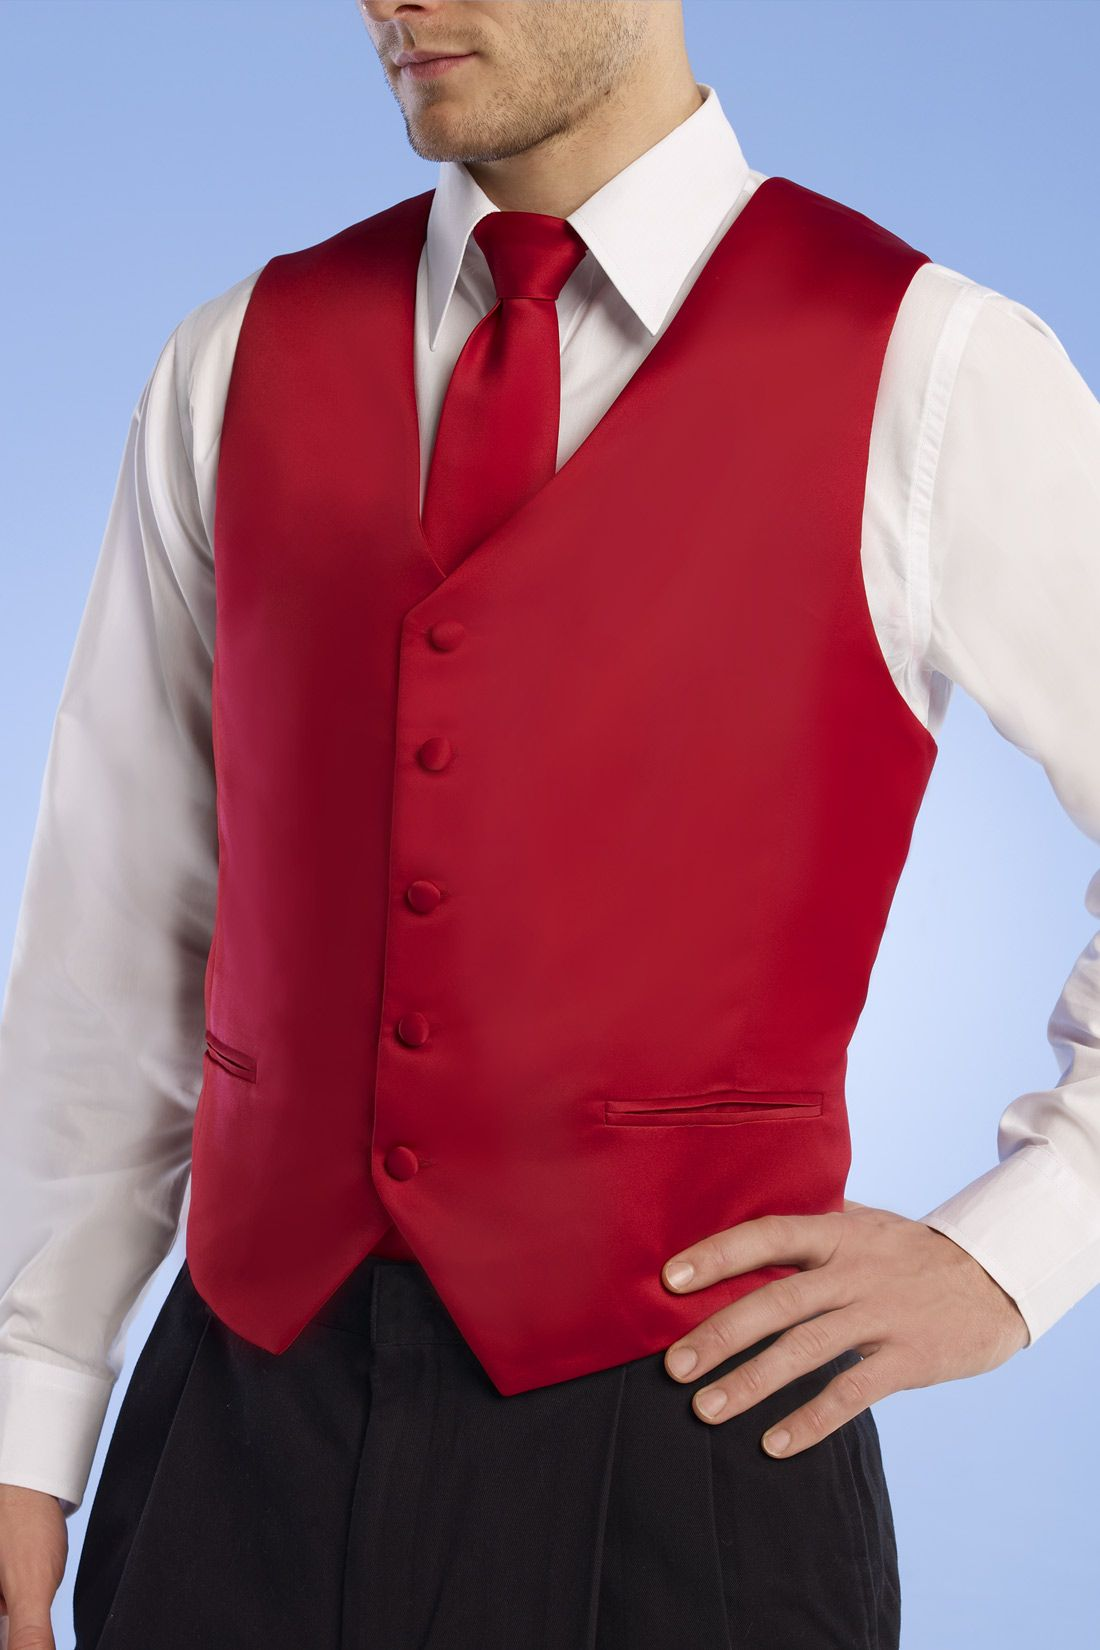 Red Best Wedding Tie For Groom ManWhite Vest And PkiXOuZ